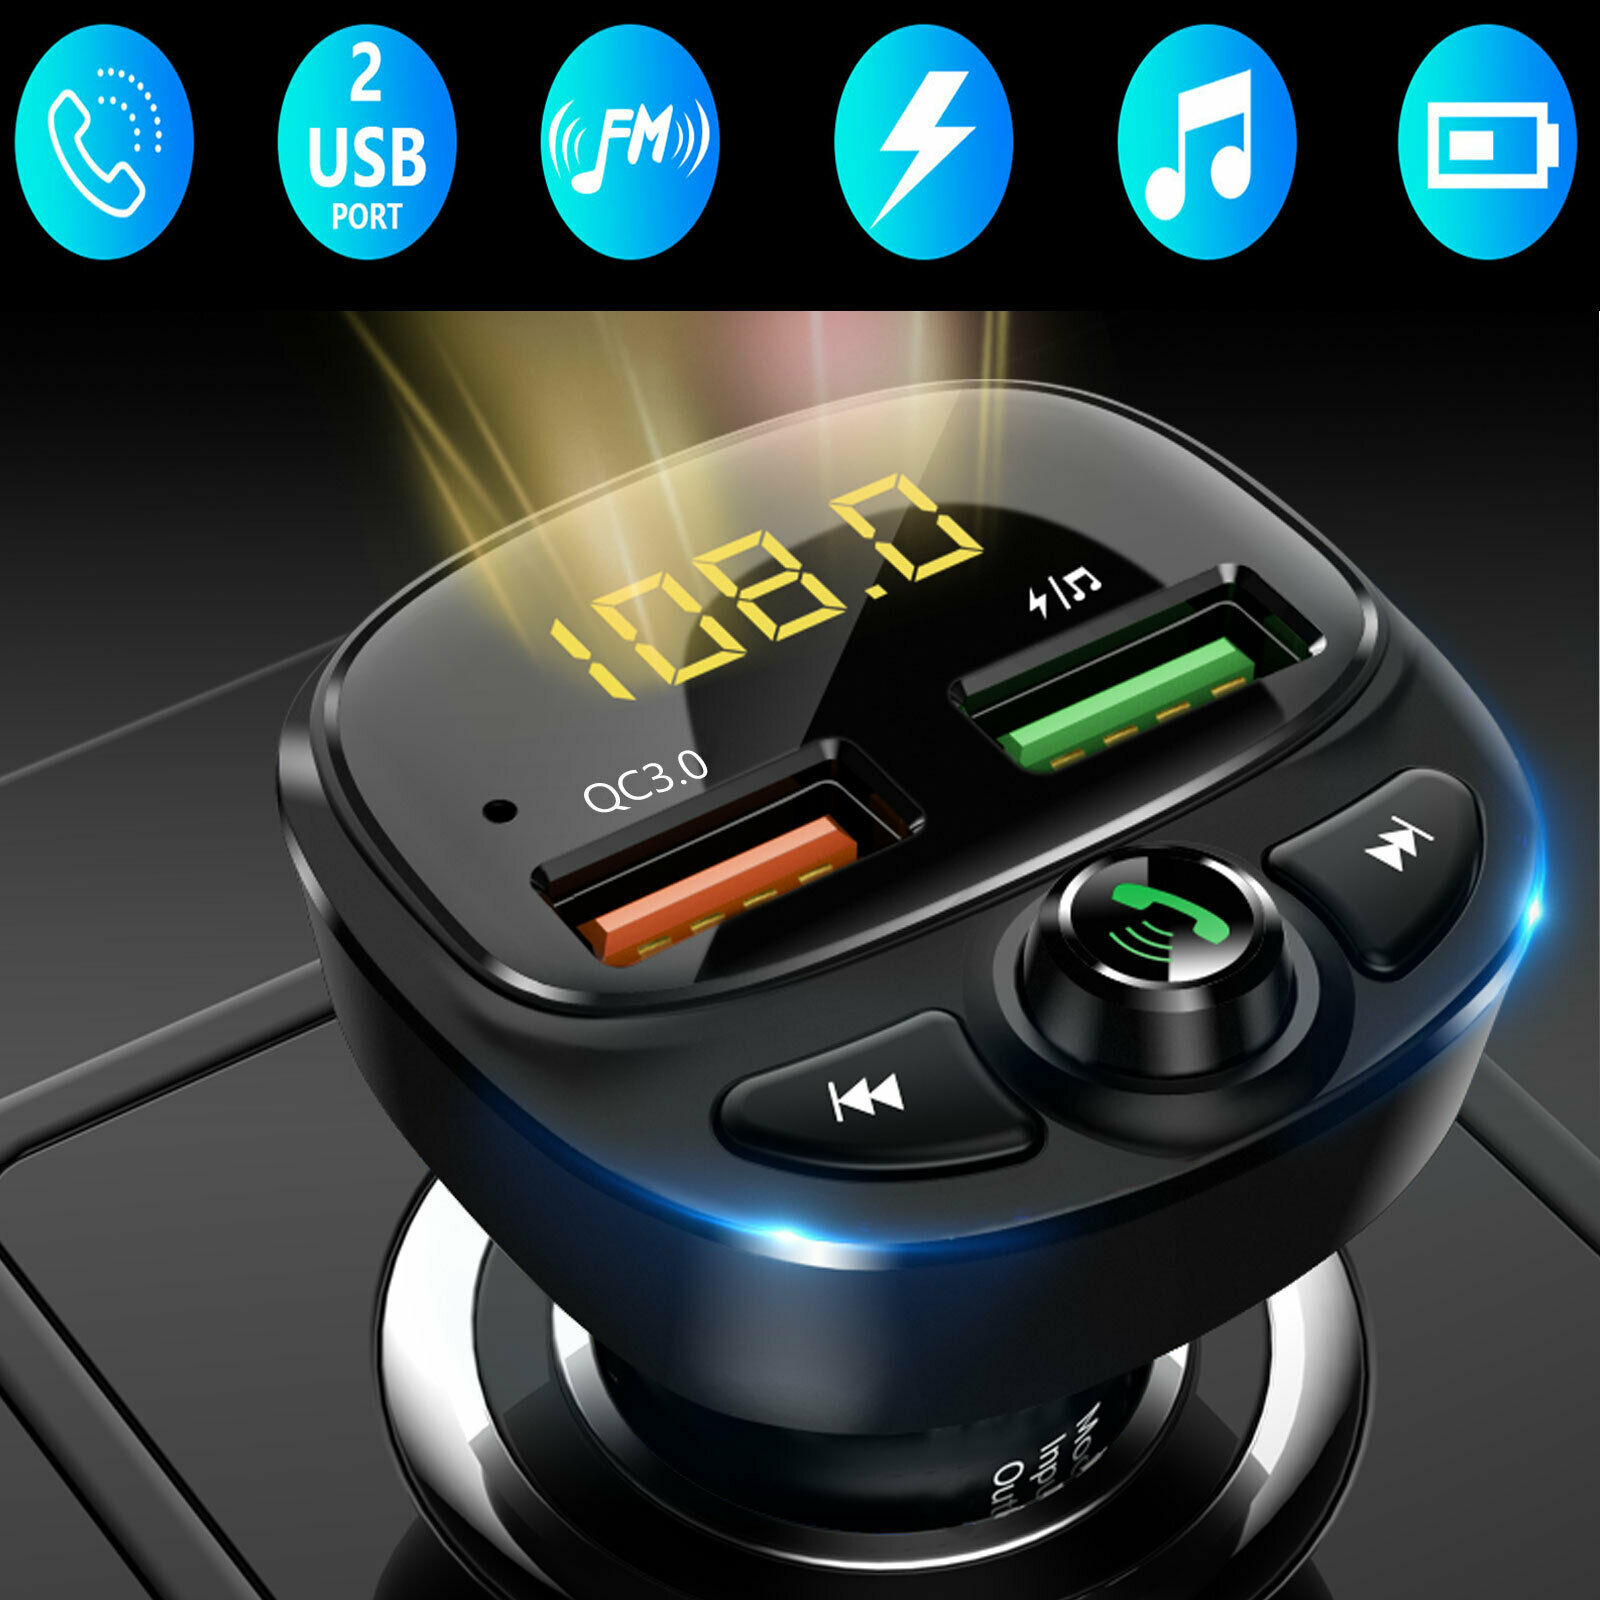 Bluetooth FM Transmitter for Car QC3.0 and Type C PD Bluetooth Wireless Radio Audio Adapter Music Player Fast Charging Car Charger Hands Free Car Kit with Deep Bass and Voice Assistant